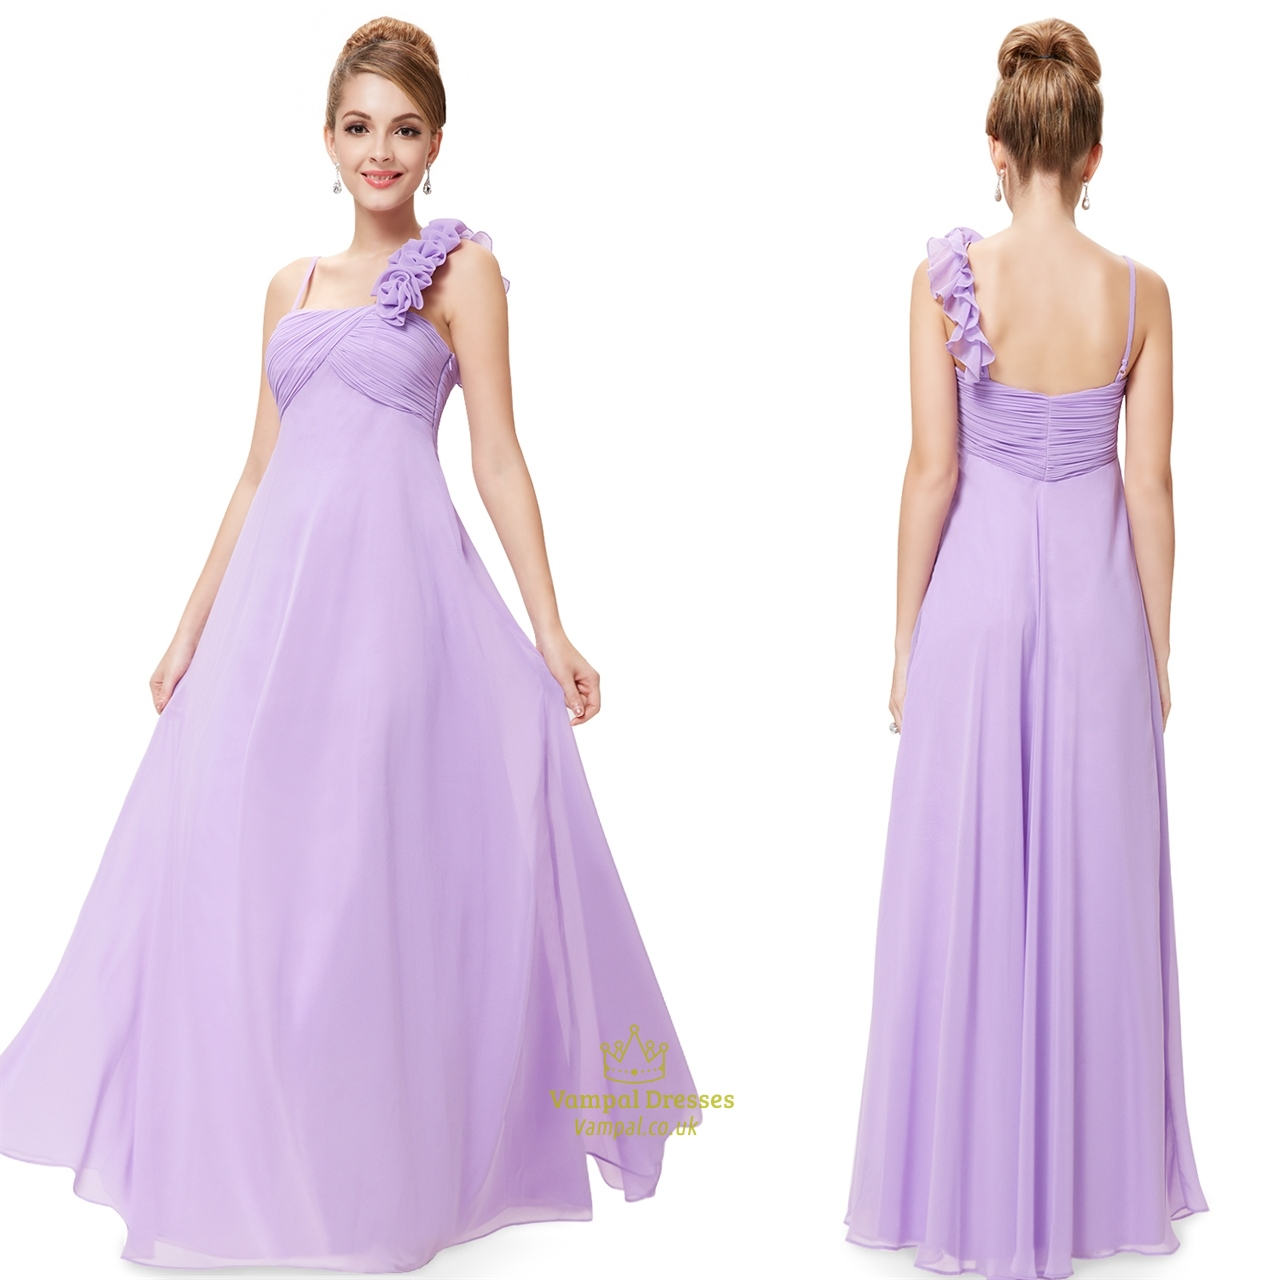 Yellow One Shoulder Bridesmaid Dresses Chiffon,Long One Shoulder ...